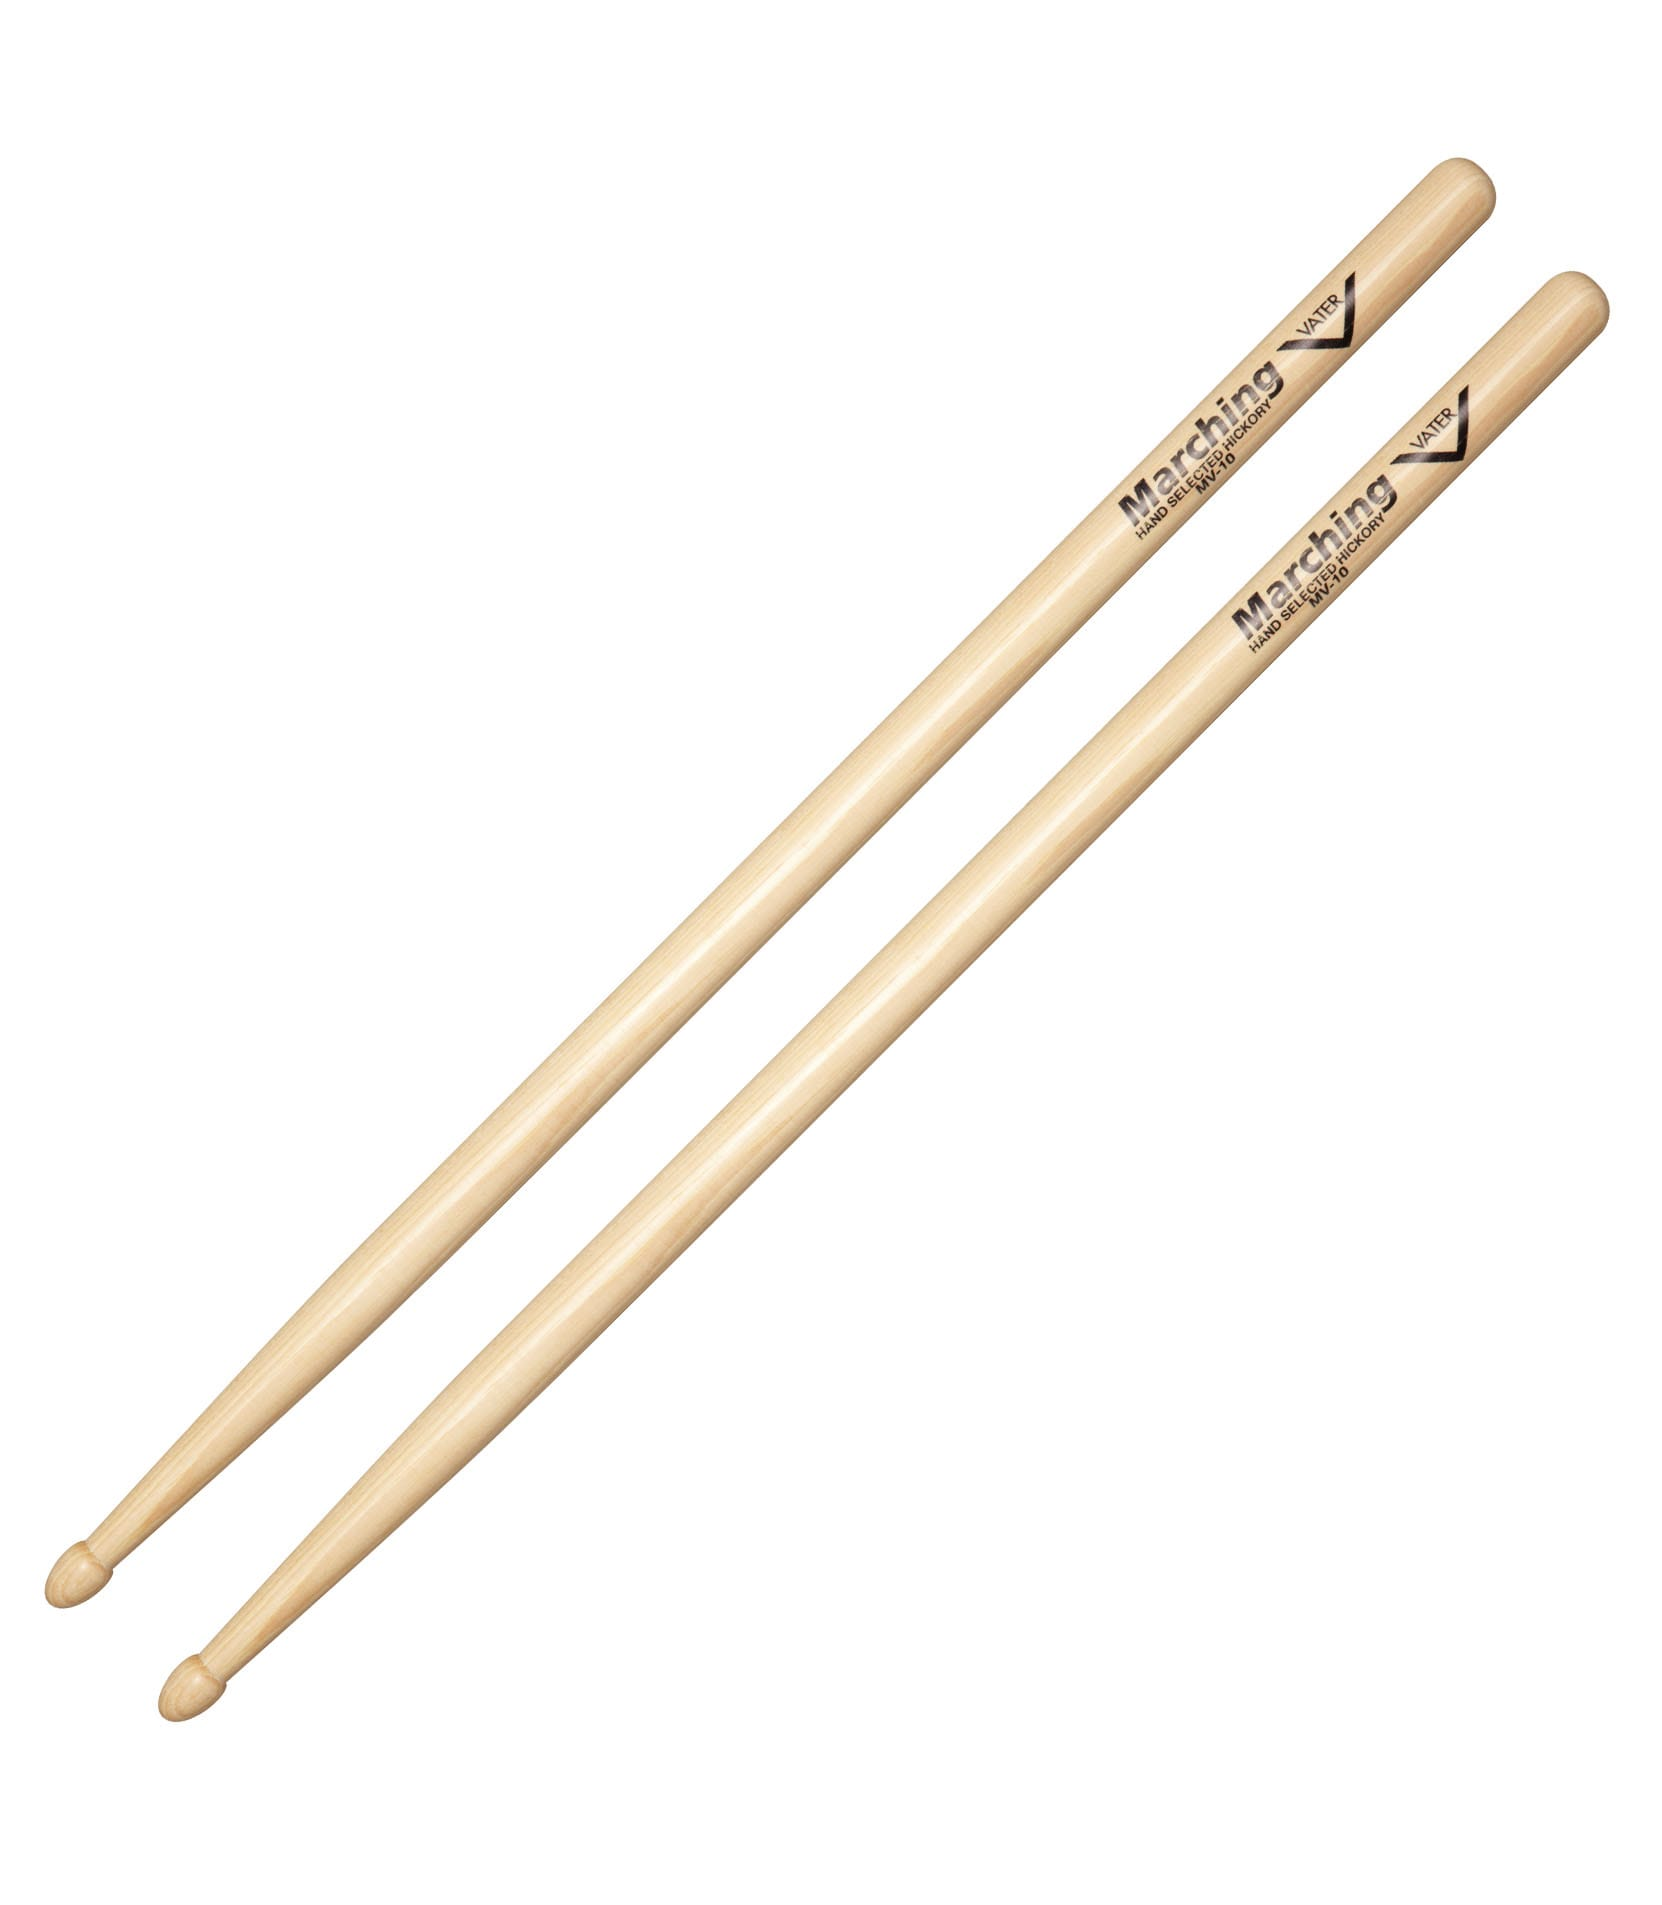 VATER - MV10 - Melody House Musical Instruments